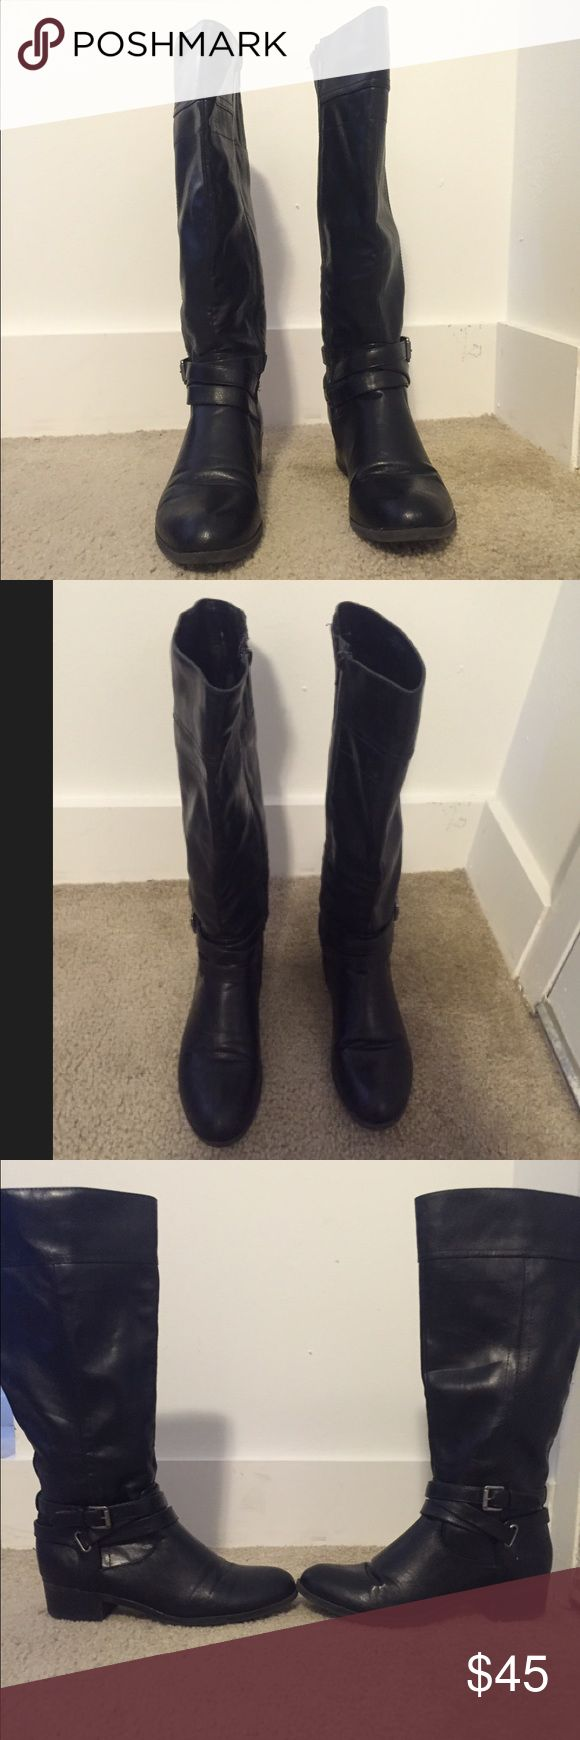 Black side zip boots Like new black boots with a side zipper. Perfect for fall and winter! They have some elastic stretch to them at the top of the boot which gives you more room if needed. Shoes